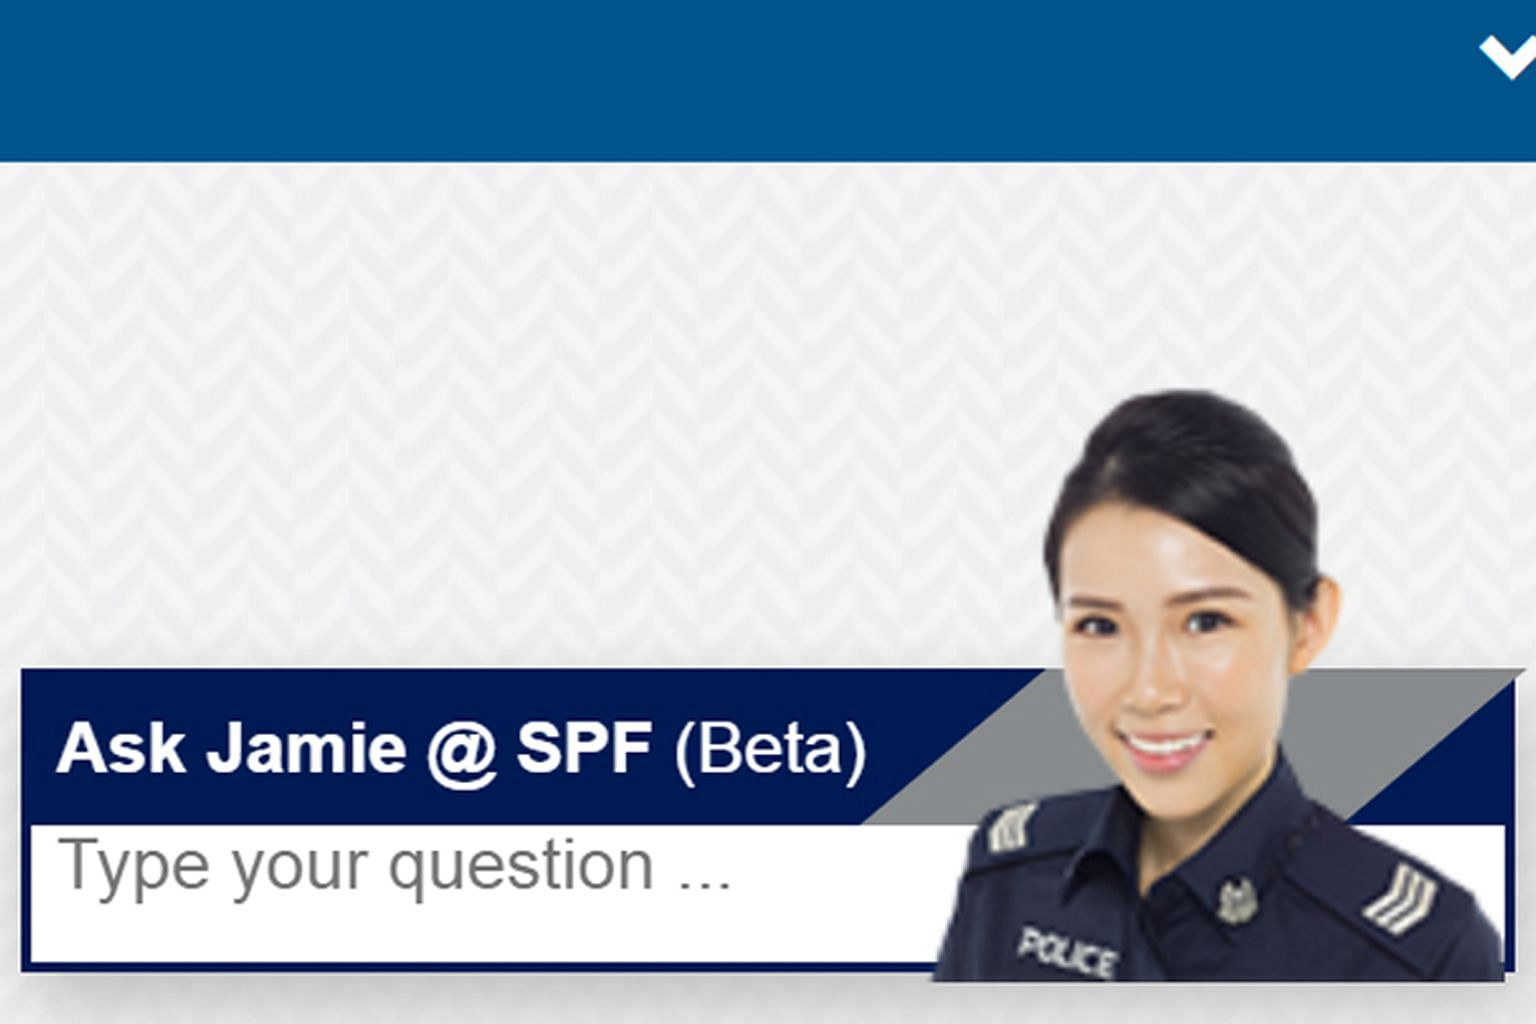 """Jamie, a virtual assistanton more than 50 government agency websites, dons a policewoman's uniform on the Singapore Police Force website. Low-cost airline Scoot's """"intern"""" Marvie helps to book flights and answer frequently asked questions on Facebook"""